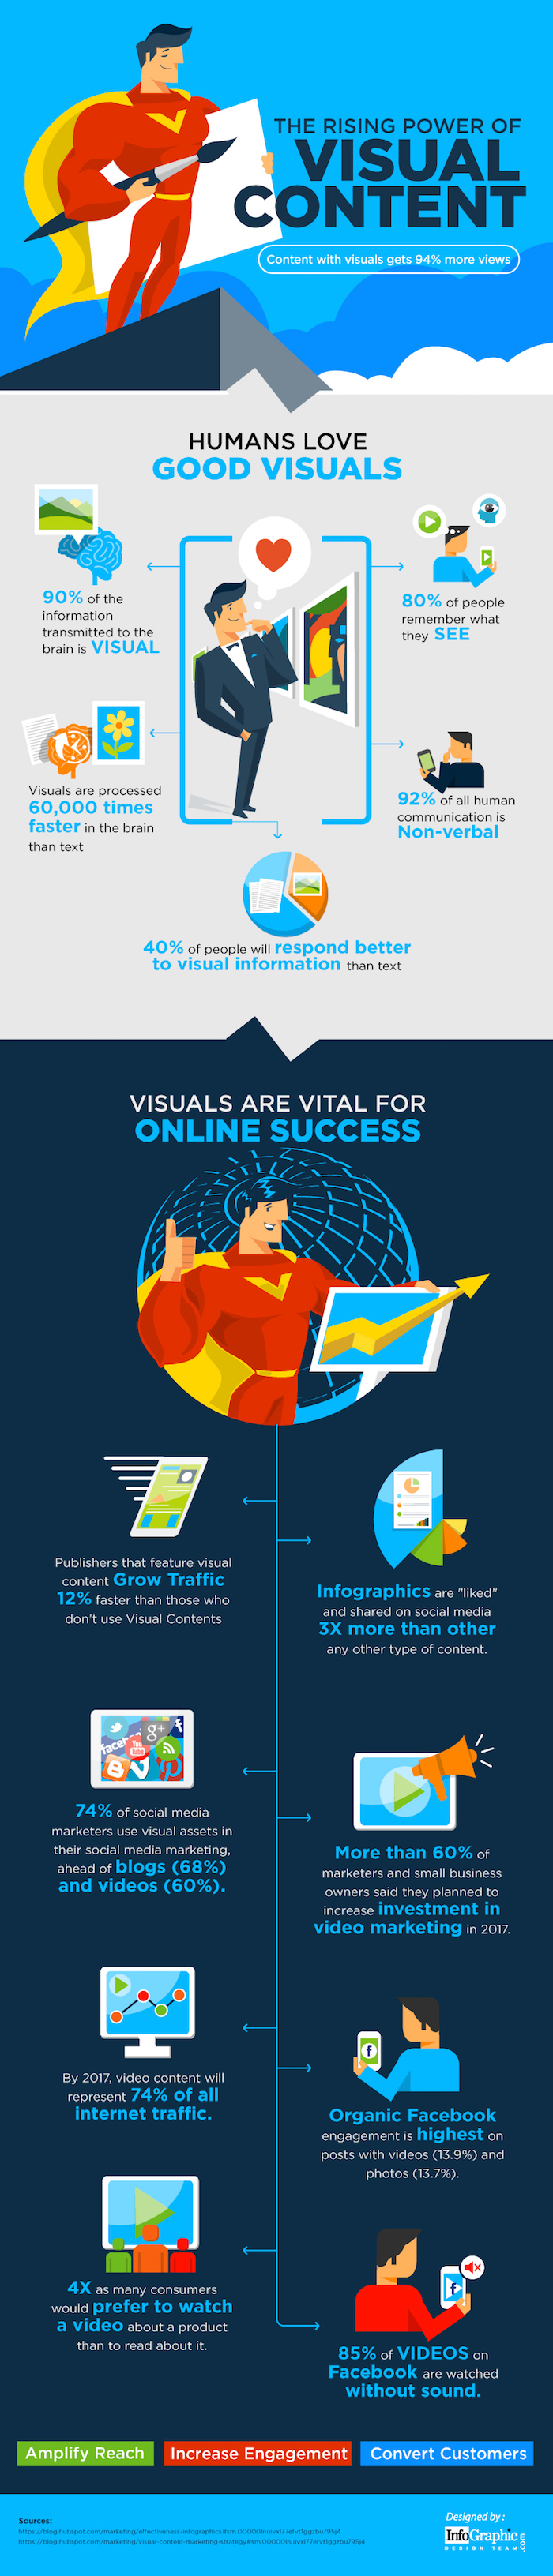 the-rising-power-of-visual-content